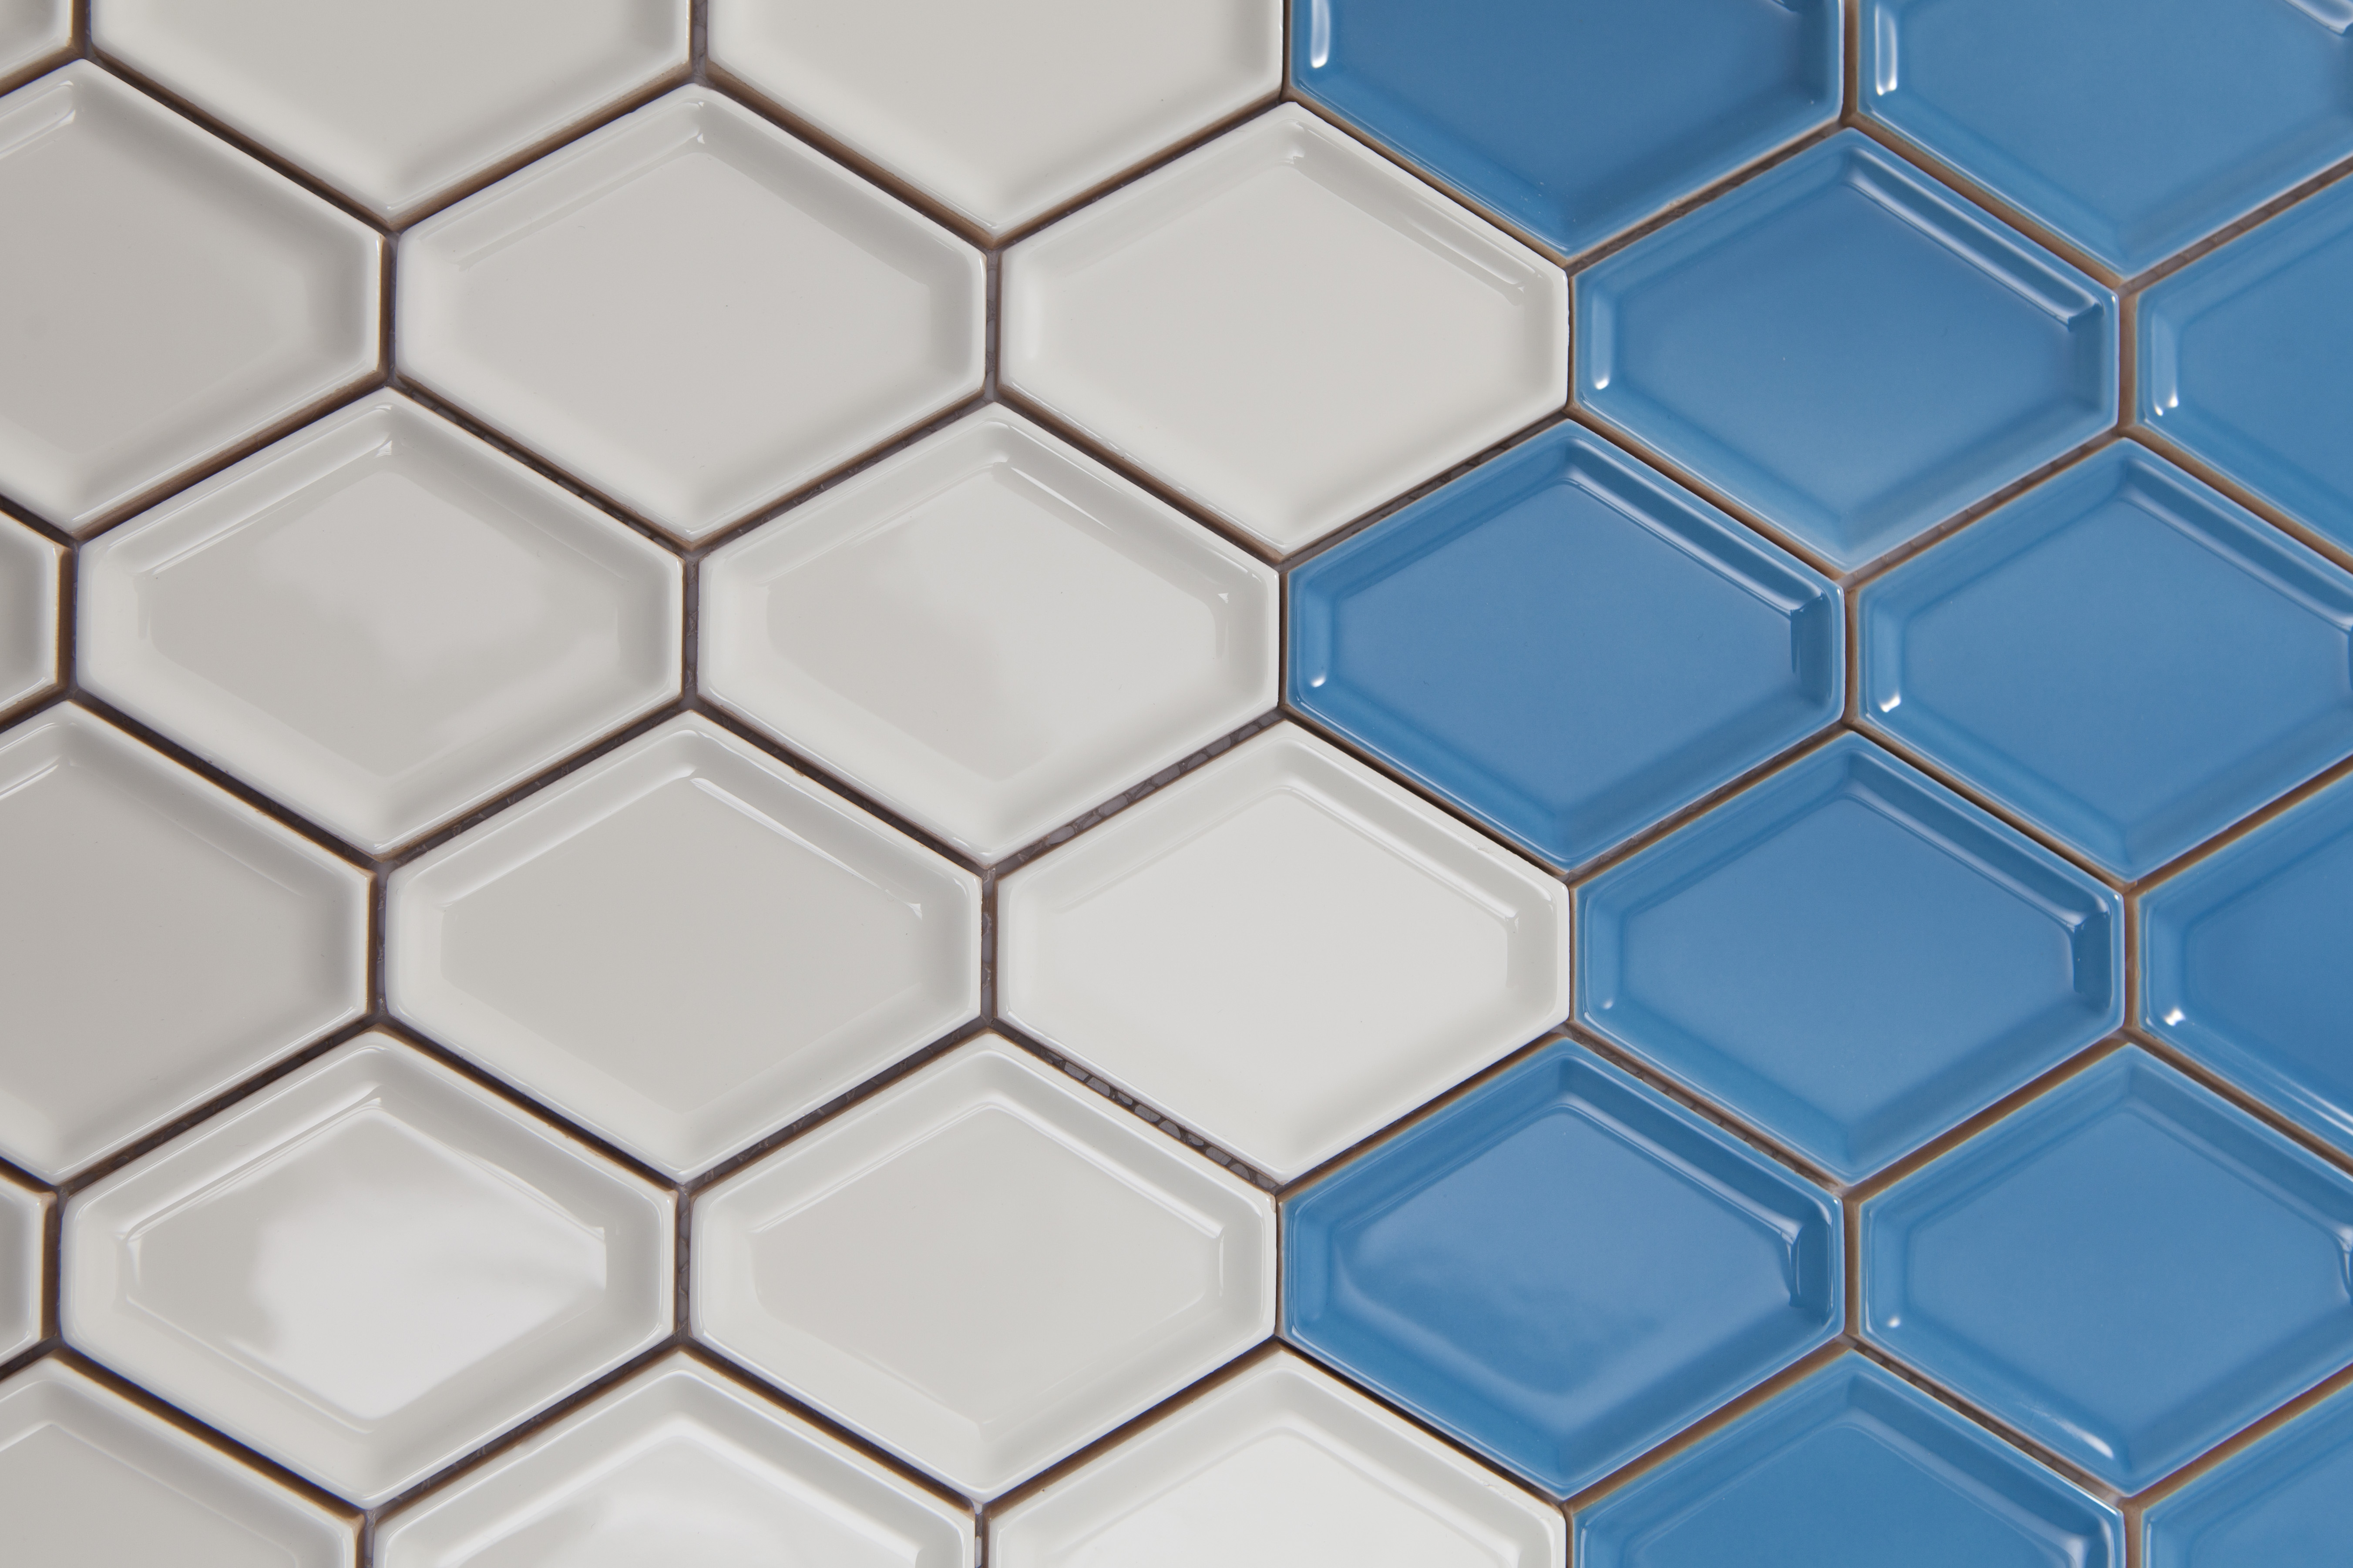 Honeycomb Tile By Bespoke Tile Amp Stone